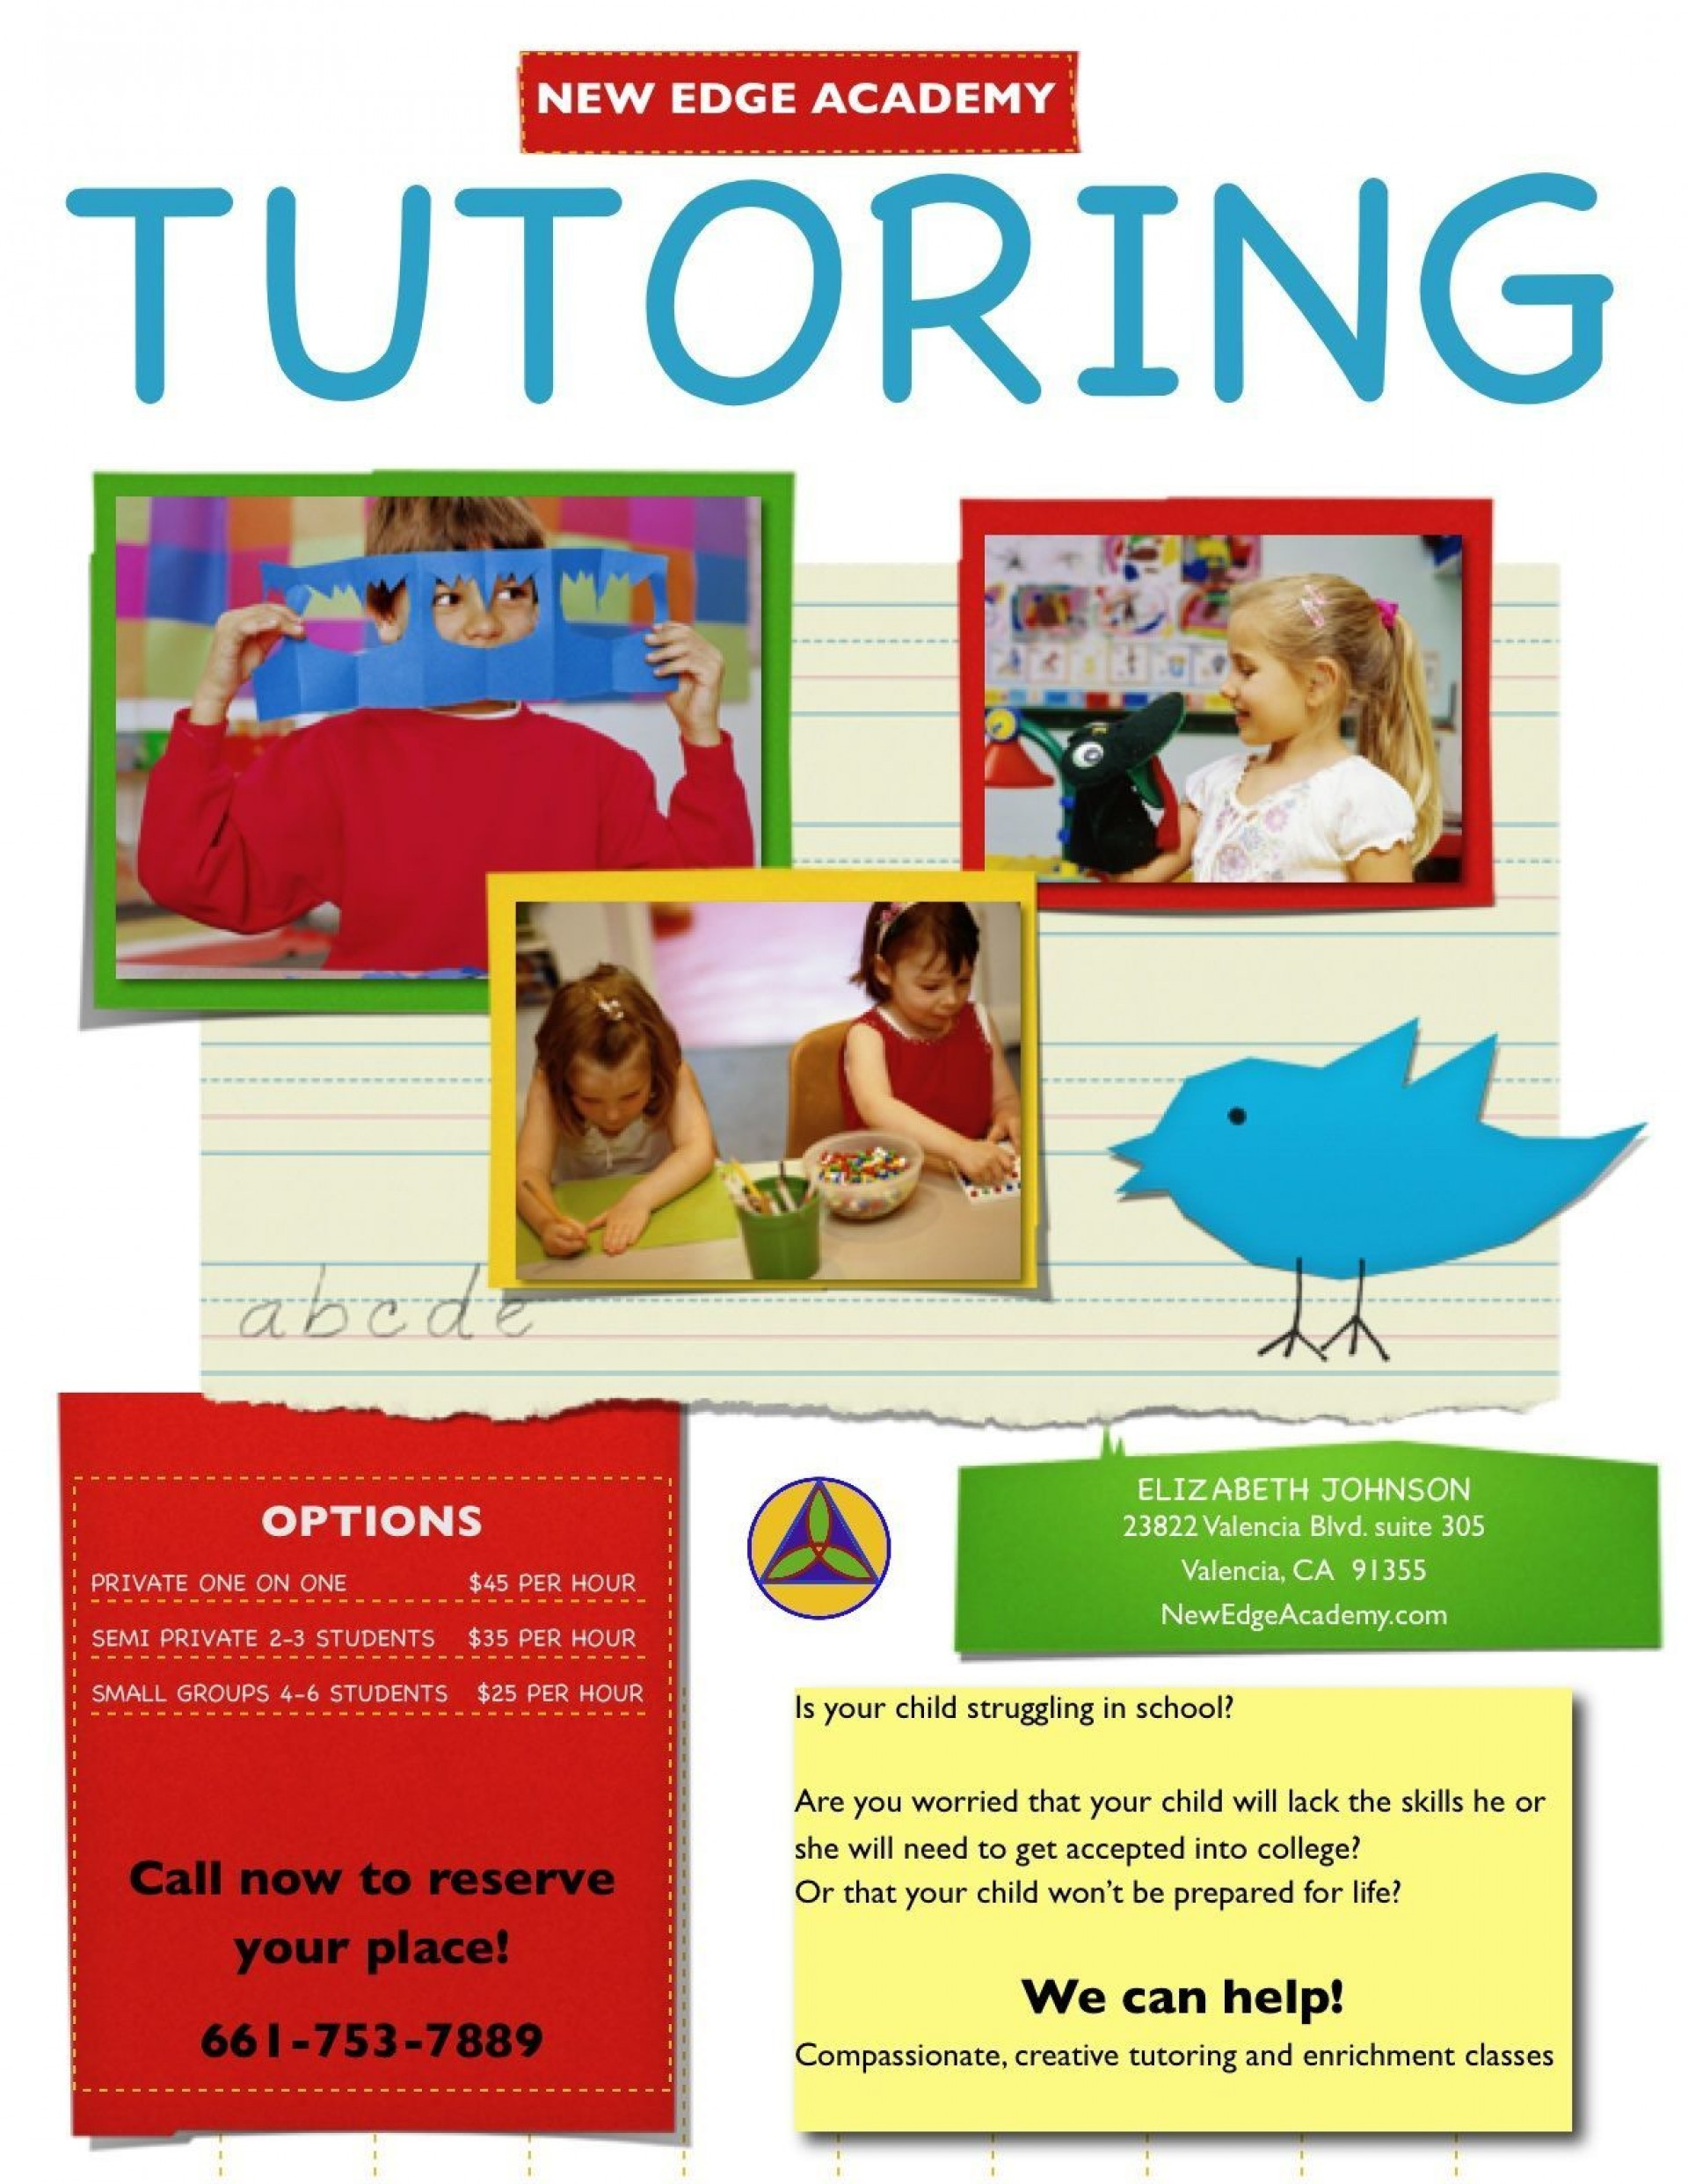 000 Formidable Tutoring Flyer Template Free High Definition  Word Math1920